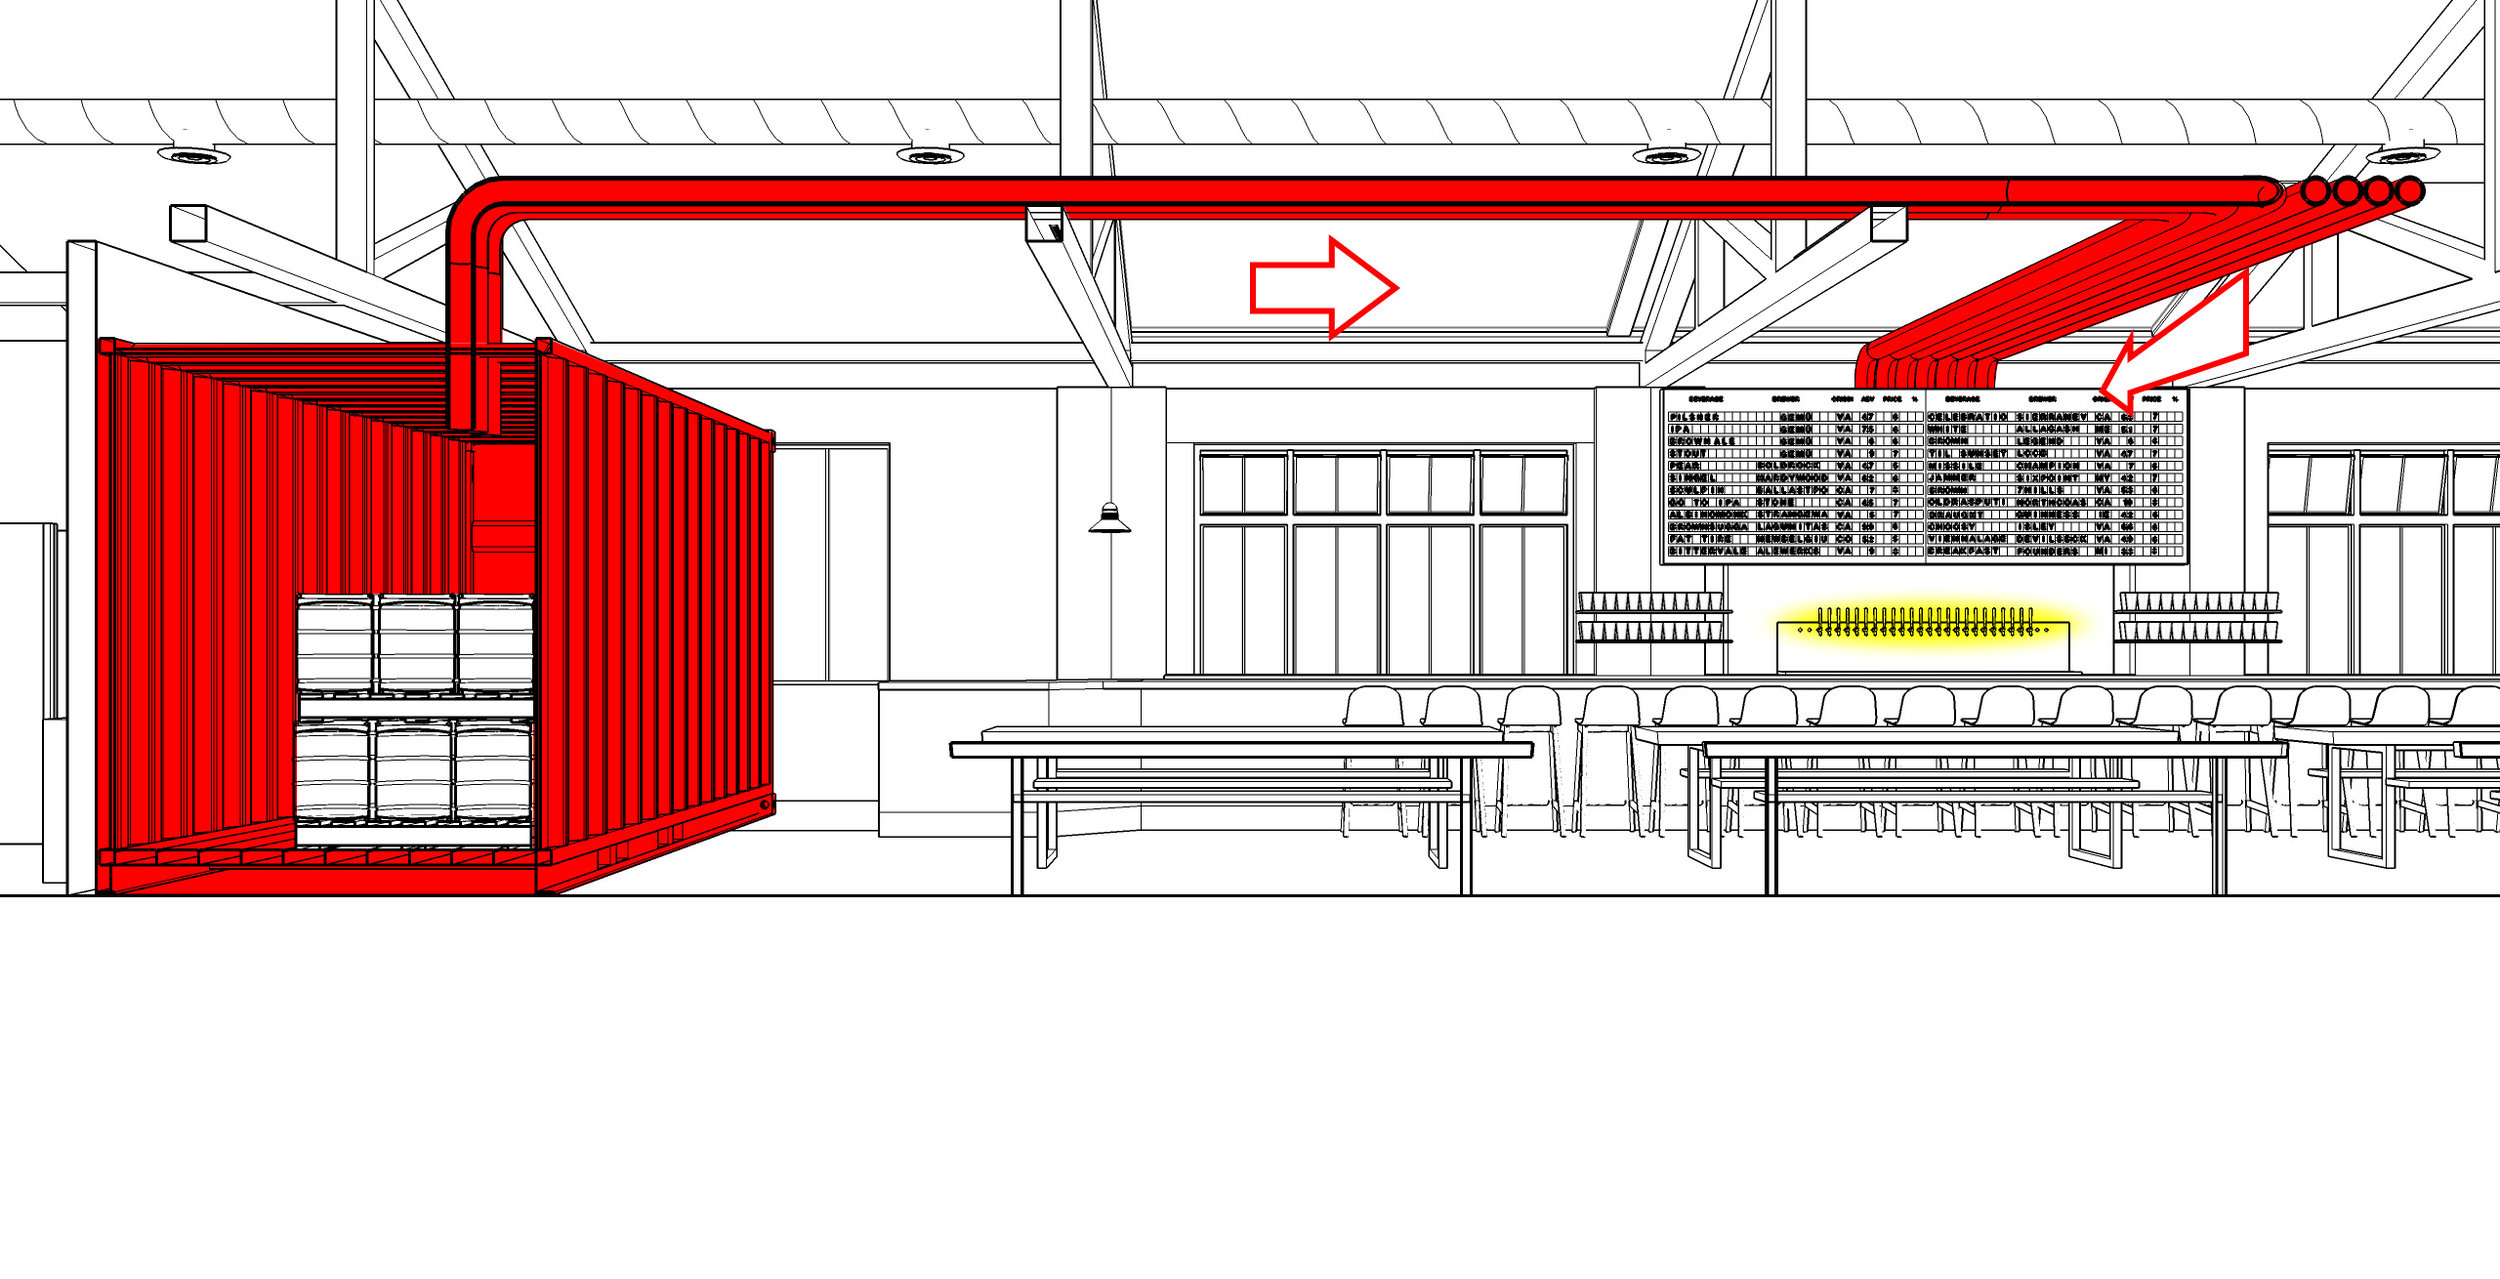 shipping container keg room and draft lines